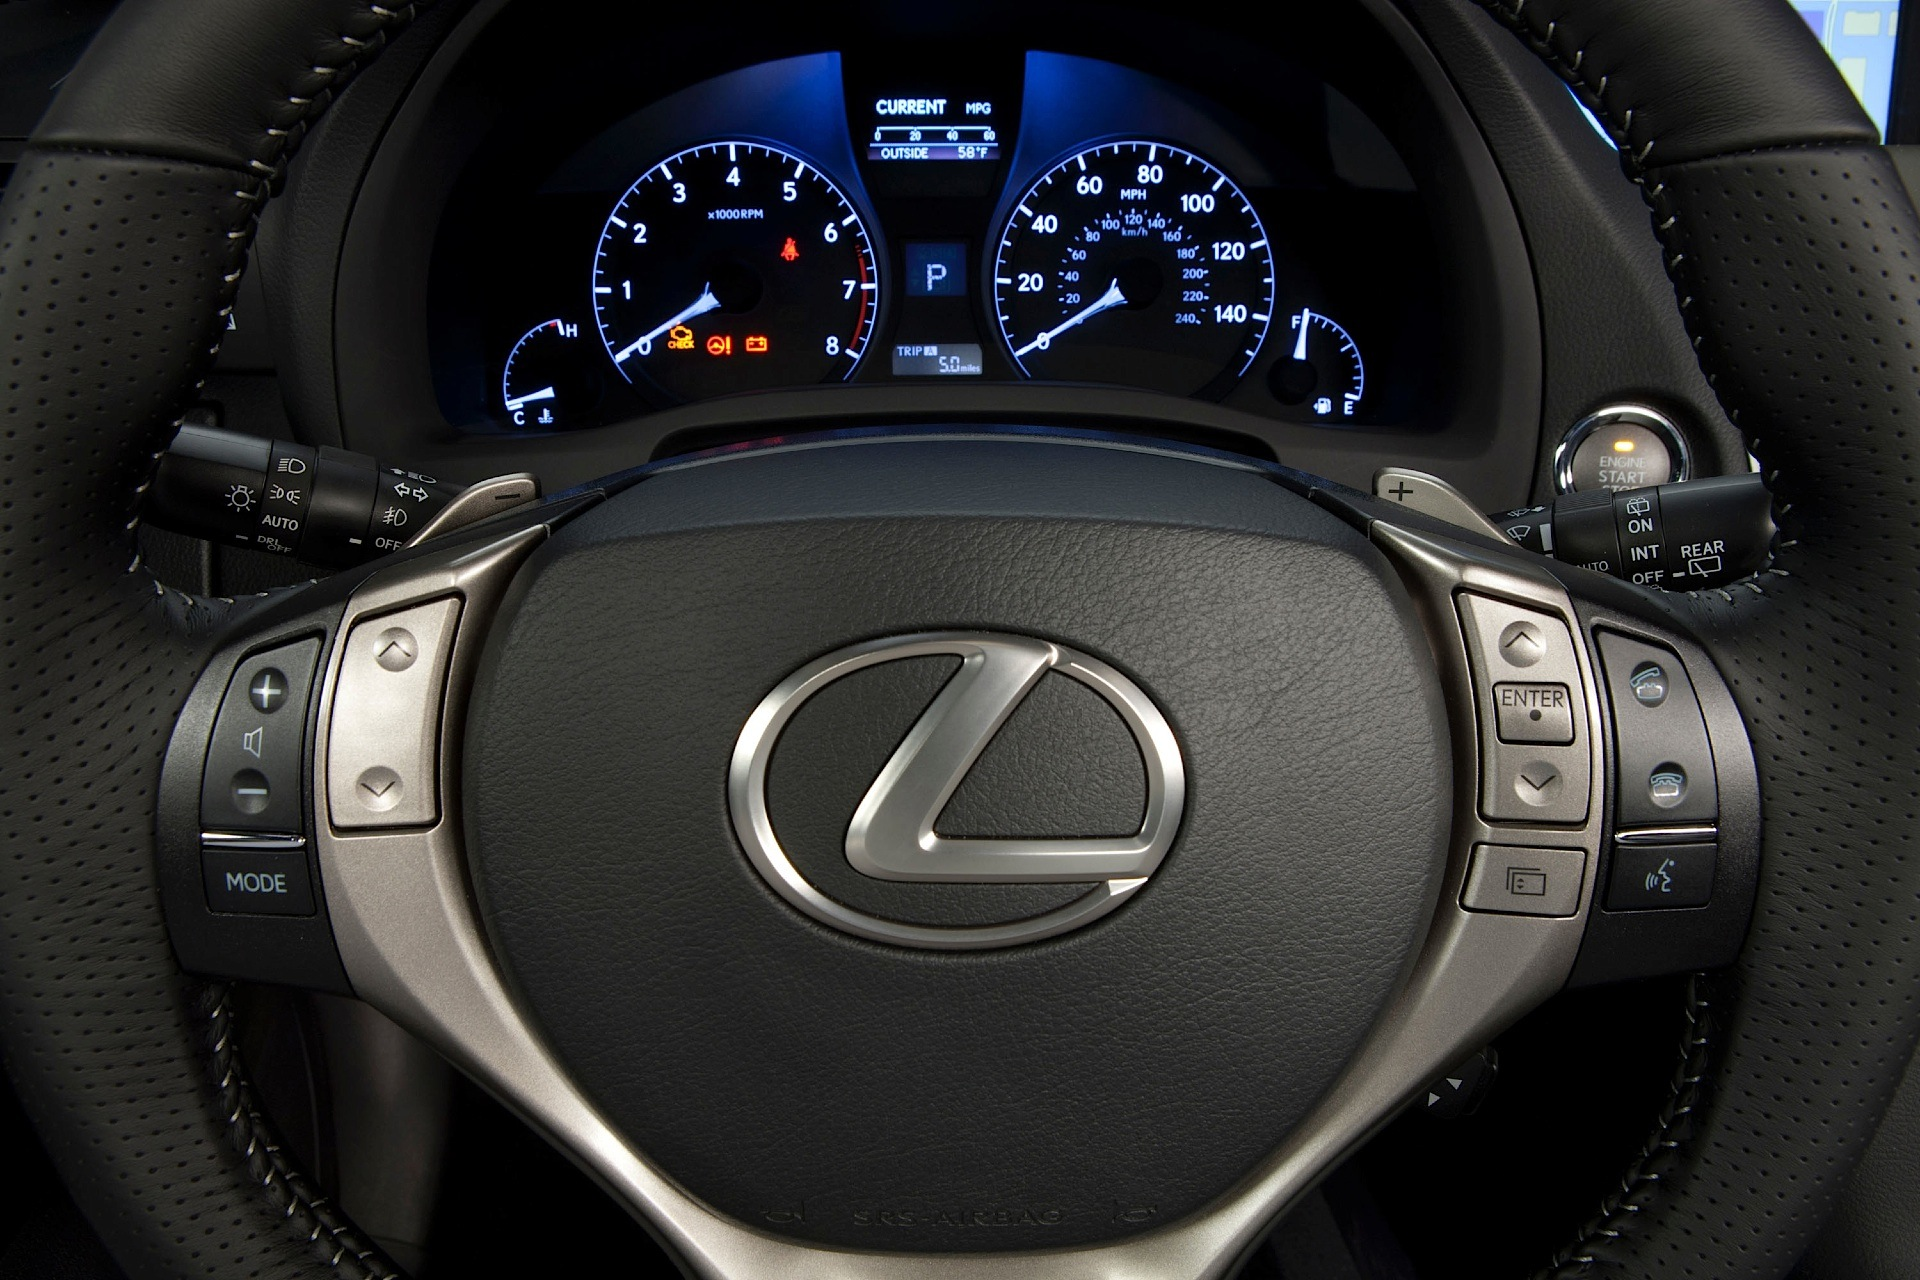 limited rx notice slip t sport tuned sacrifice handling standard of is qualities for f the engaging won and although do lexus you more comfort blog gold impact drive